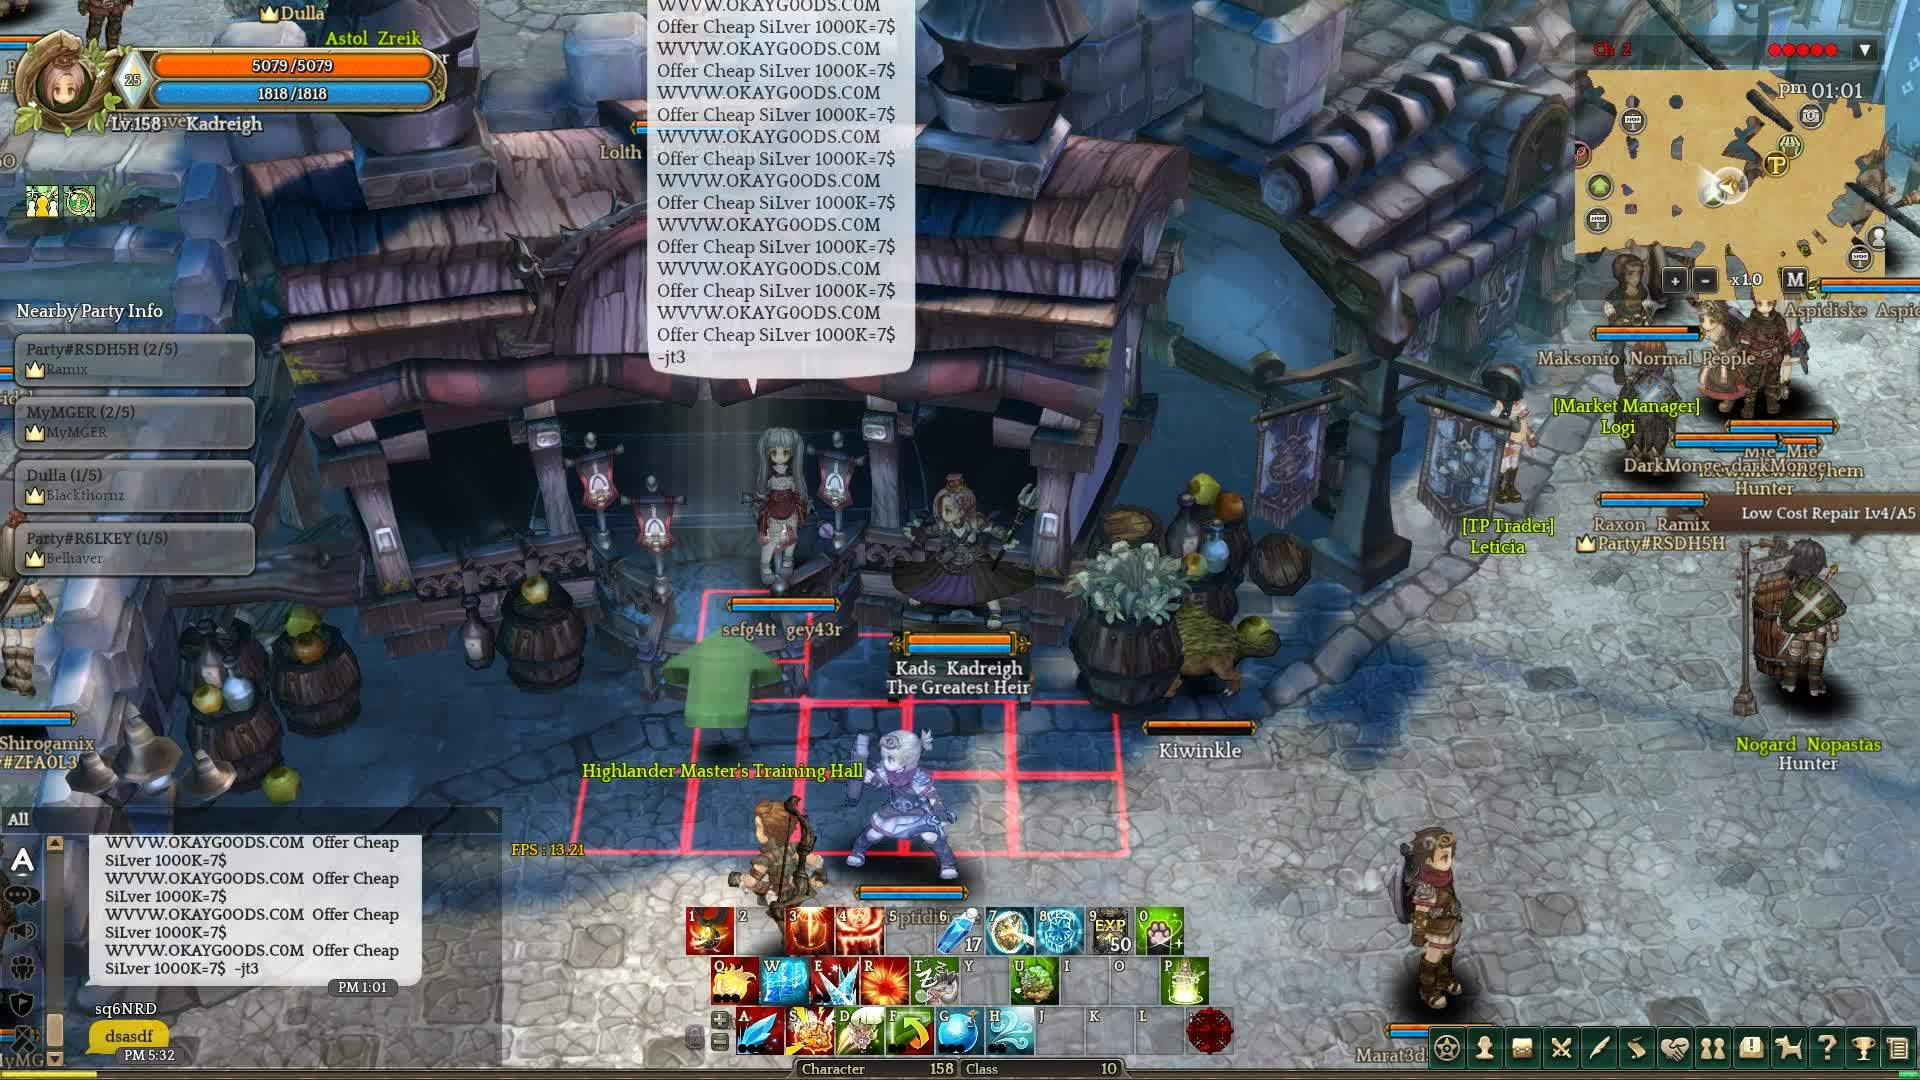 TOS, Troll, treeofsavior, Cleaning the streets of gold sellers GIFs